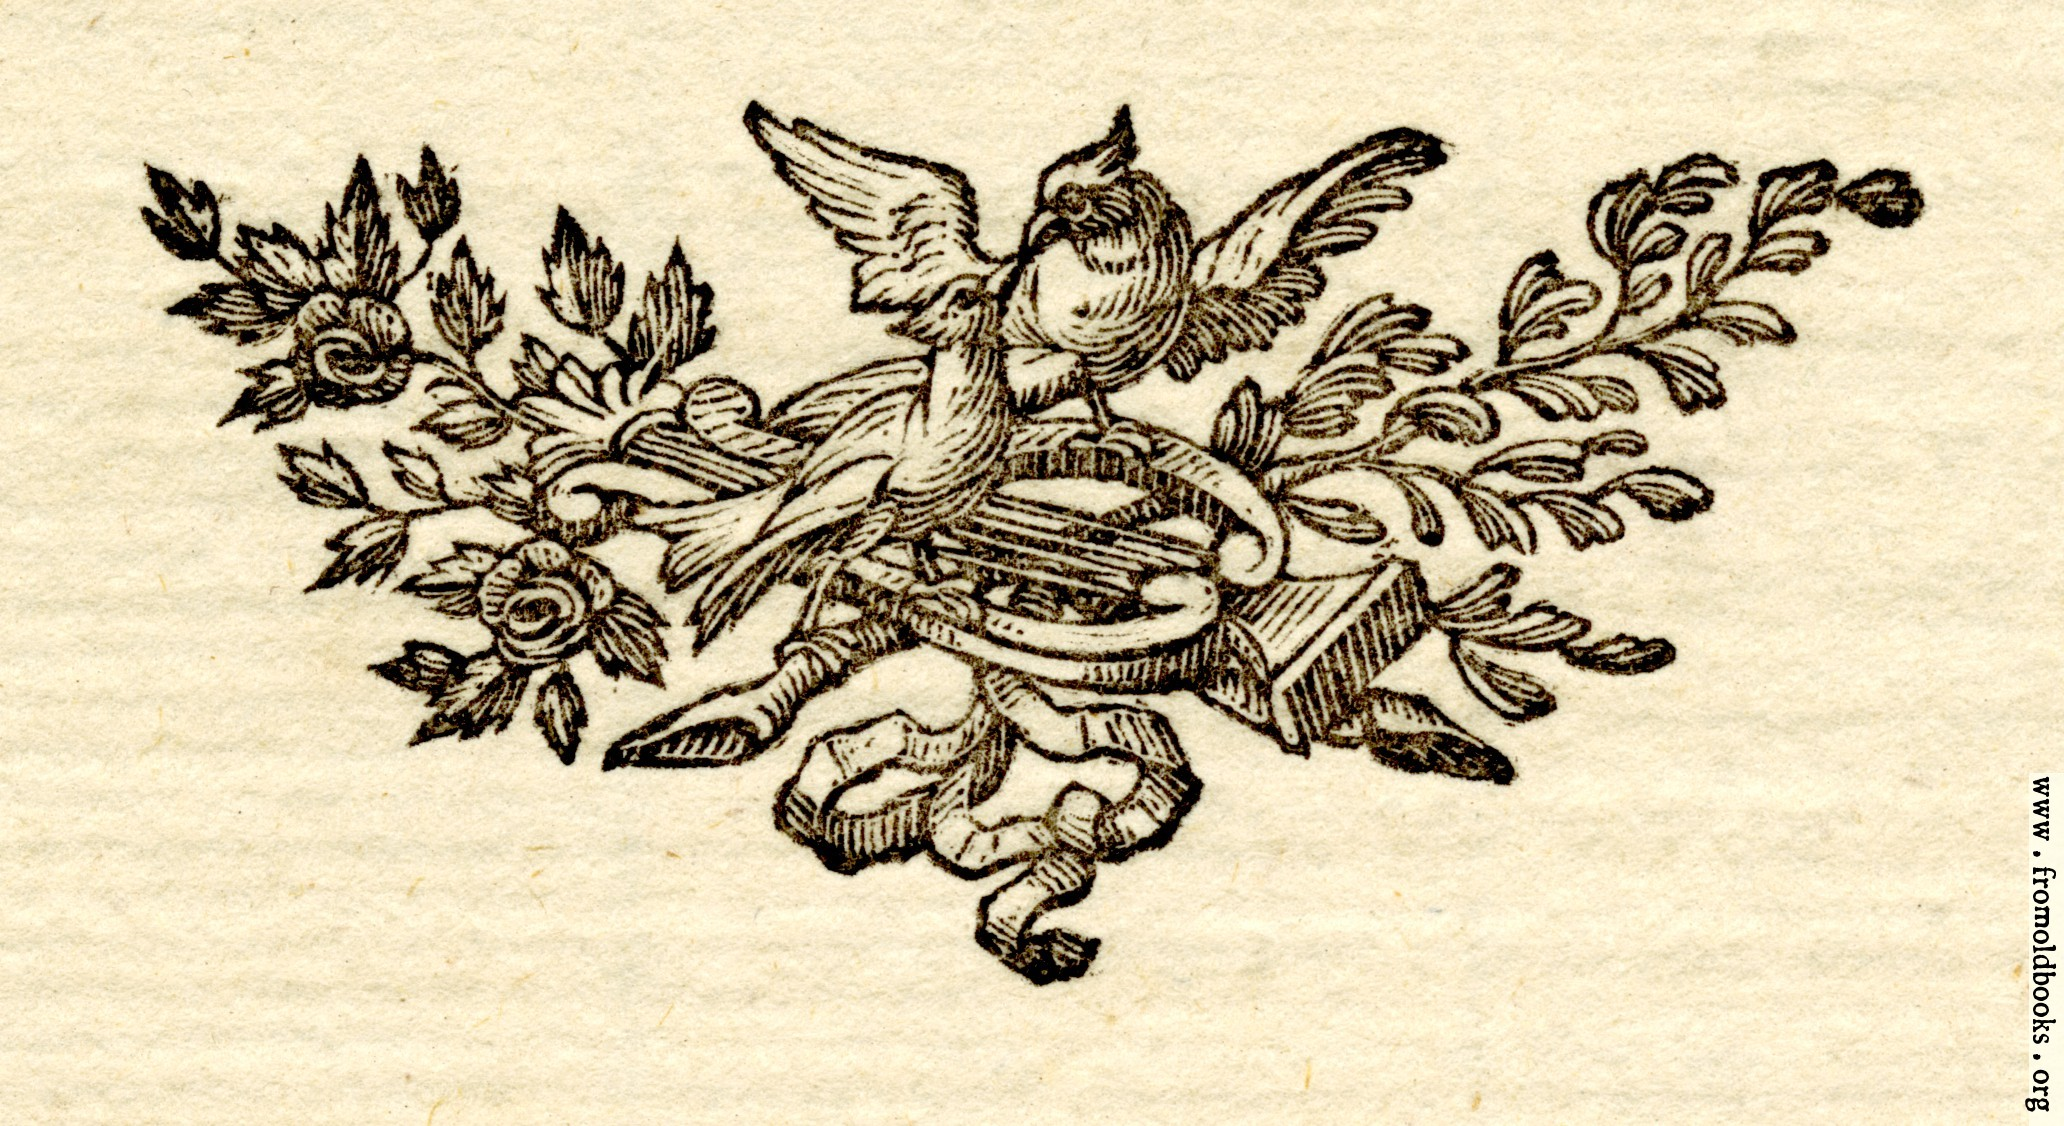 [Picture: Printer's ornament with birds]